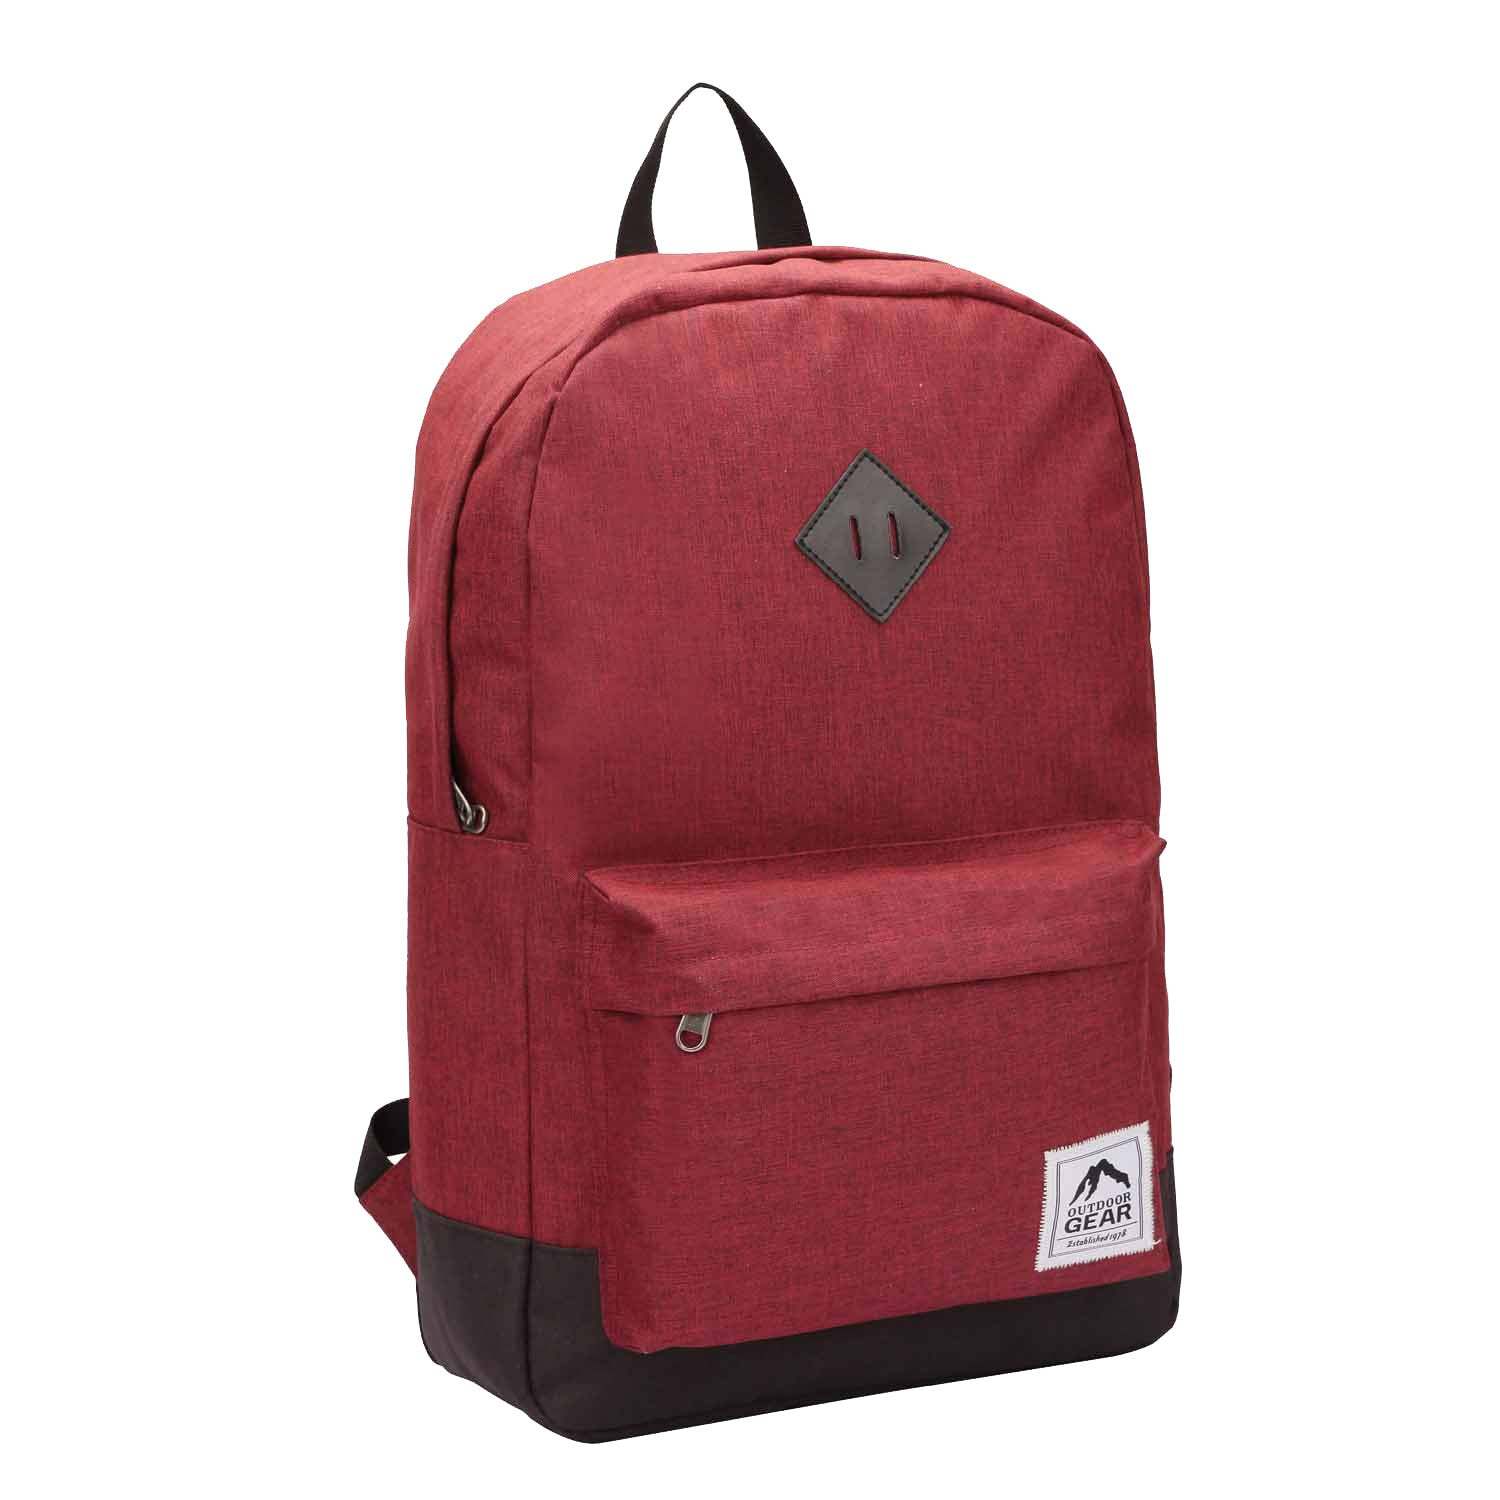 Classic Backpack DayPack Backpacks for School Rucksacks RL813R